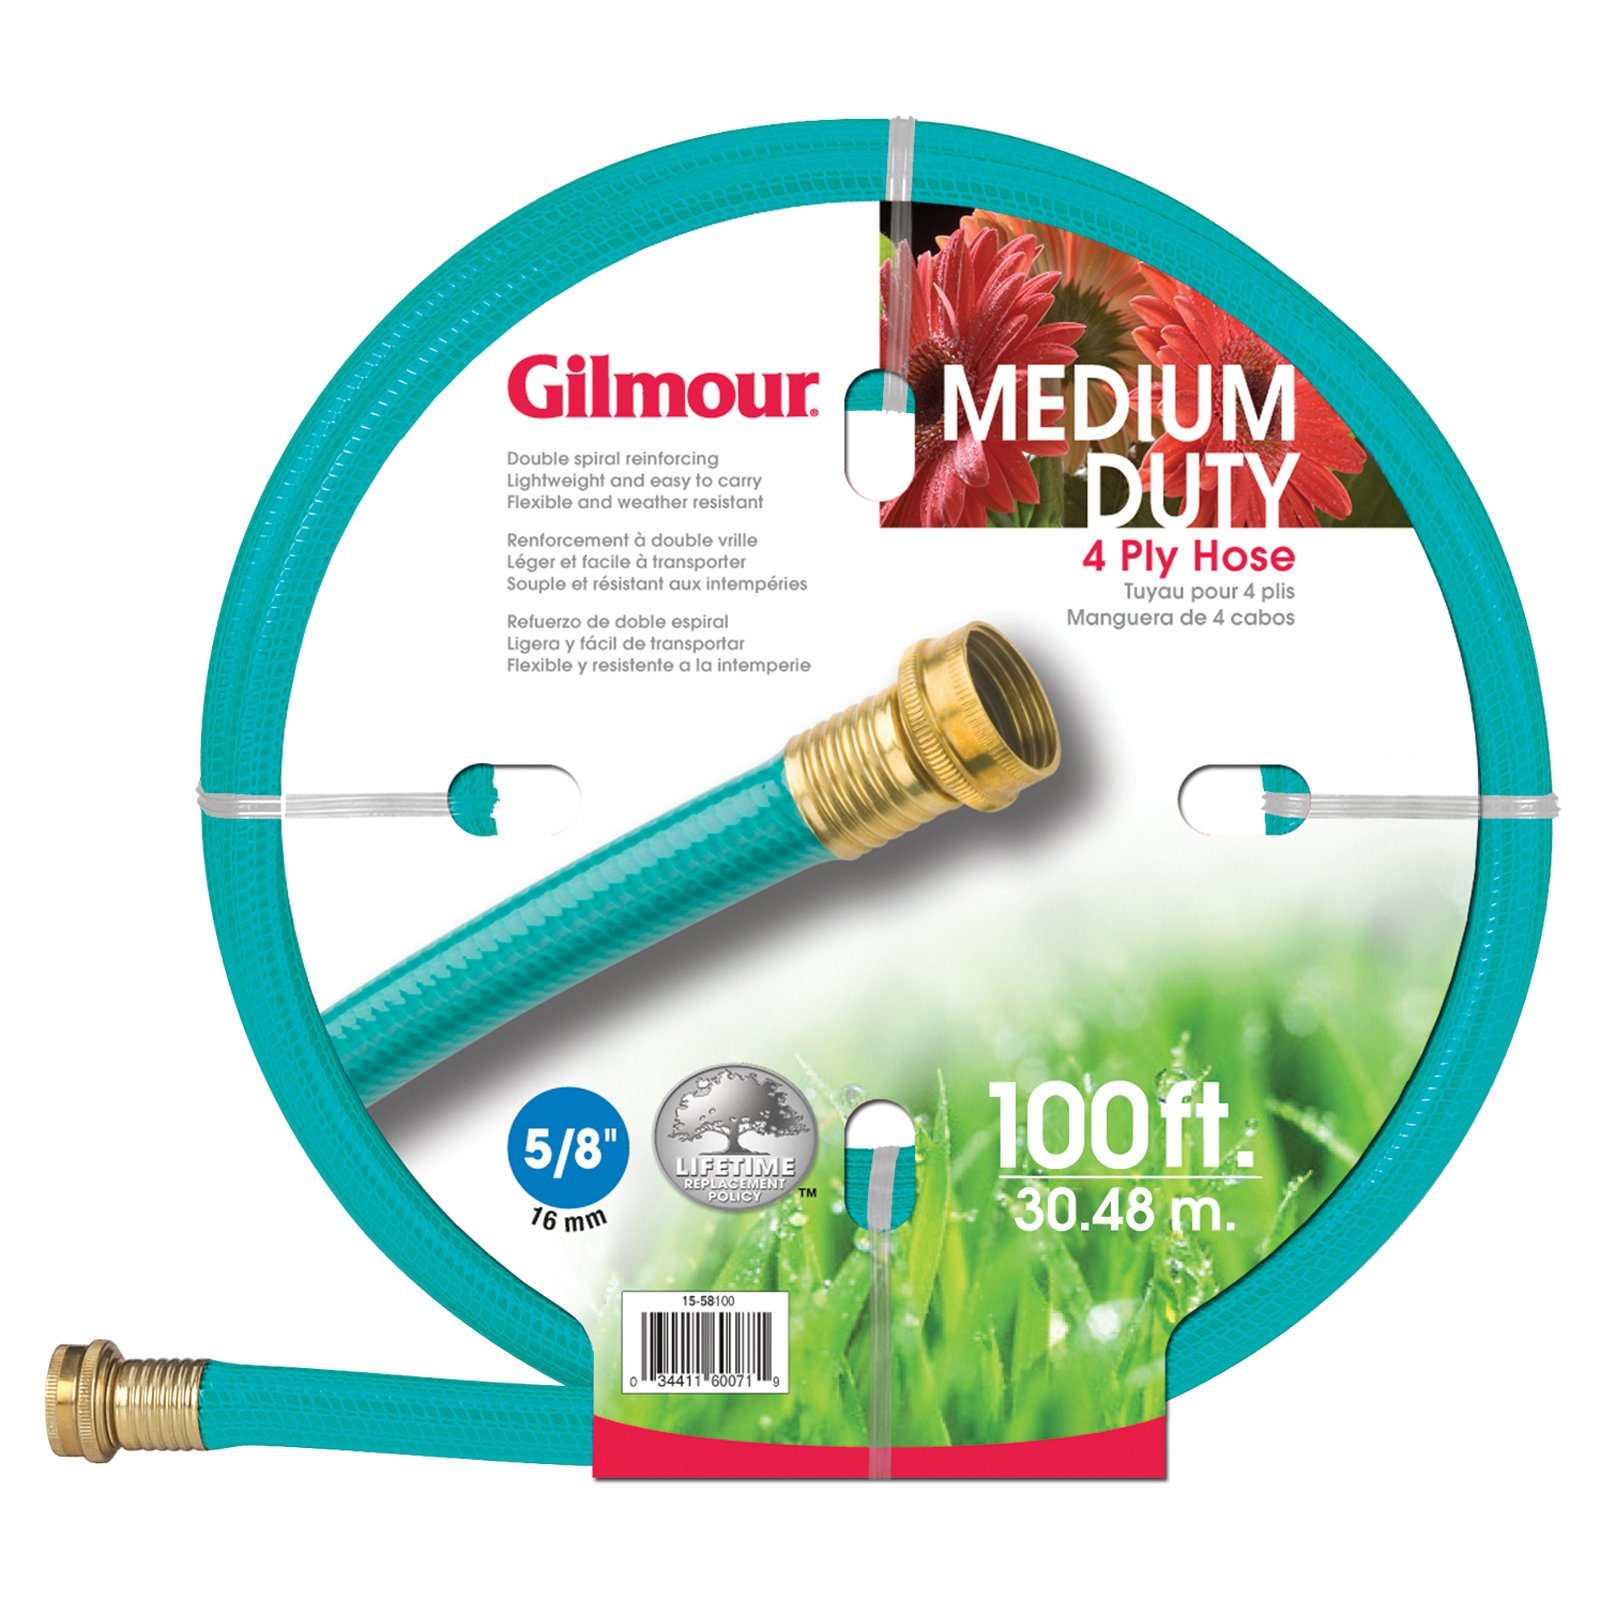 Gilmour 4 Ply Medium Duty Garden Hose by Fiskars Brands Inc